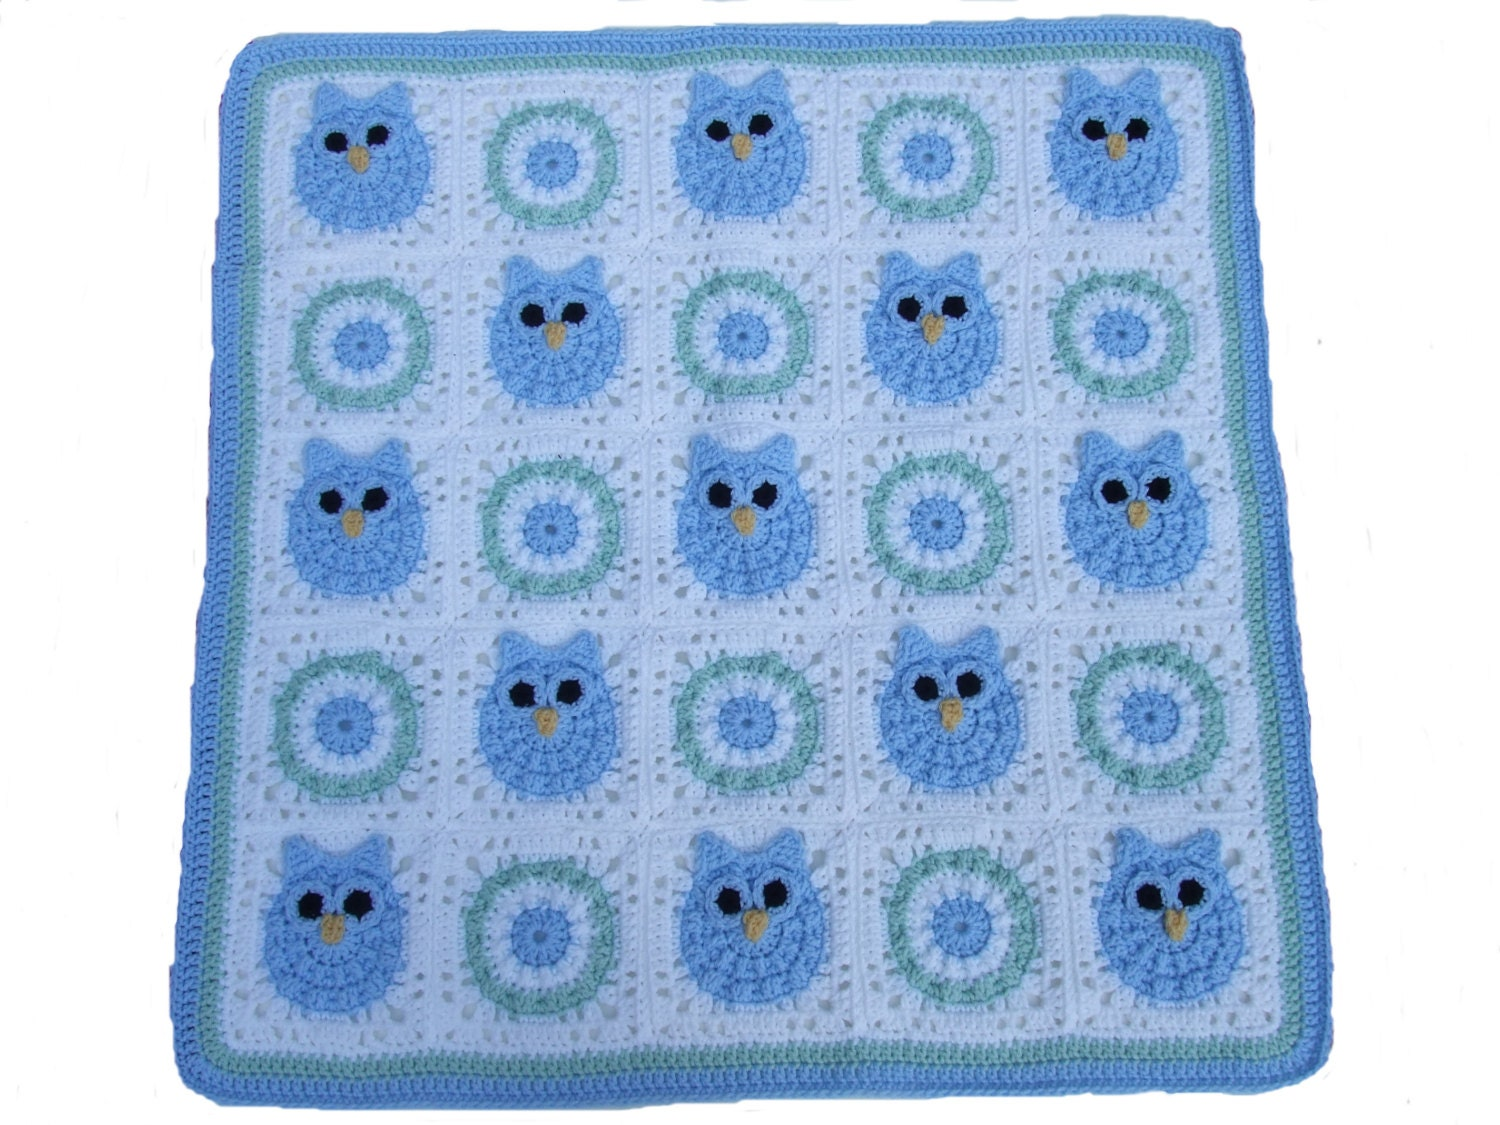 Crochet Owl Baby Blanket : Crochet Pattern Owl Baby Blanket Digital by CrochetVillage on Etsy